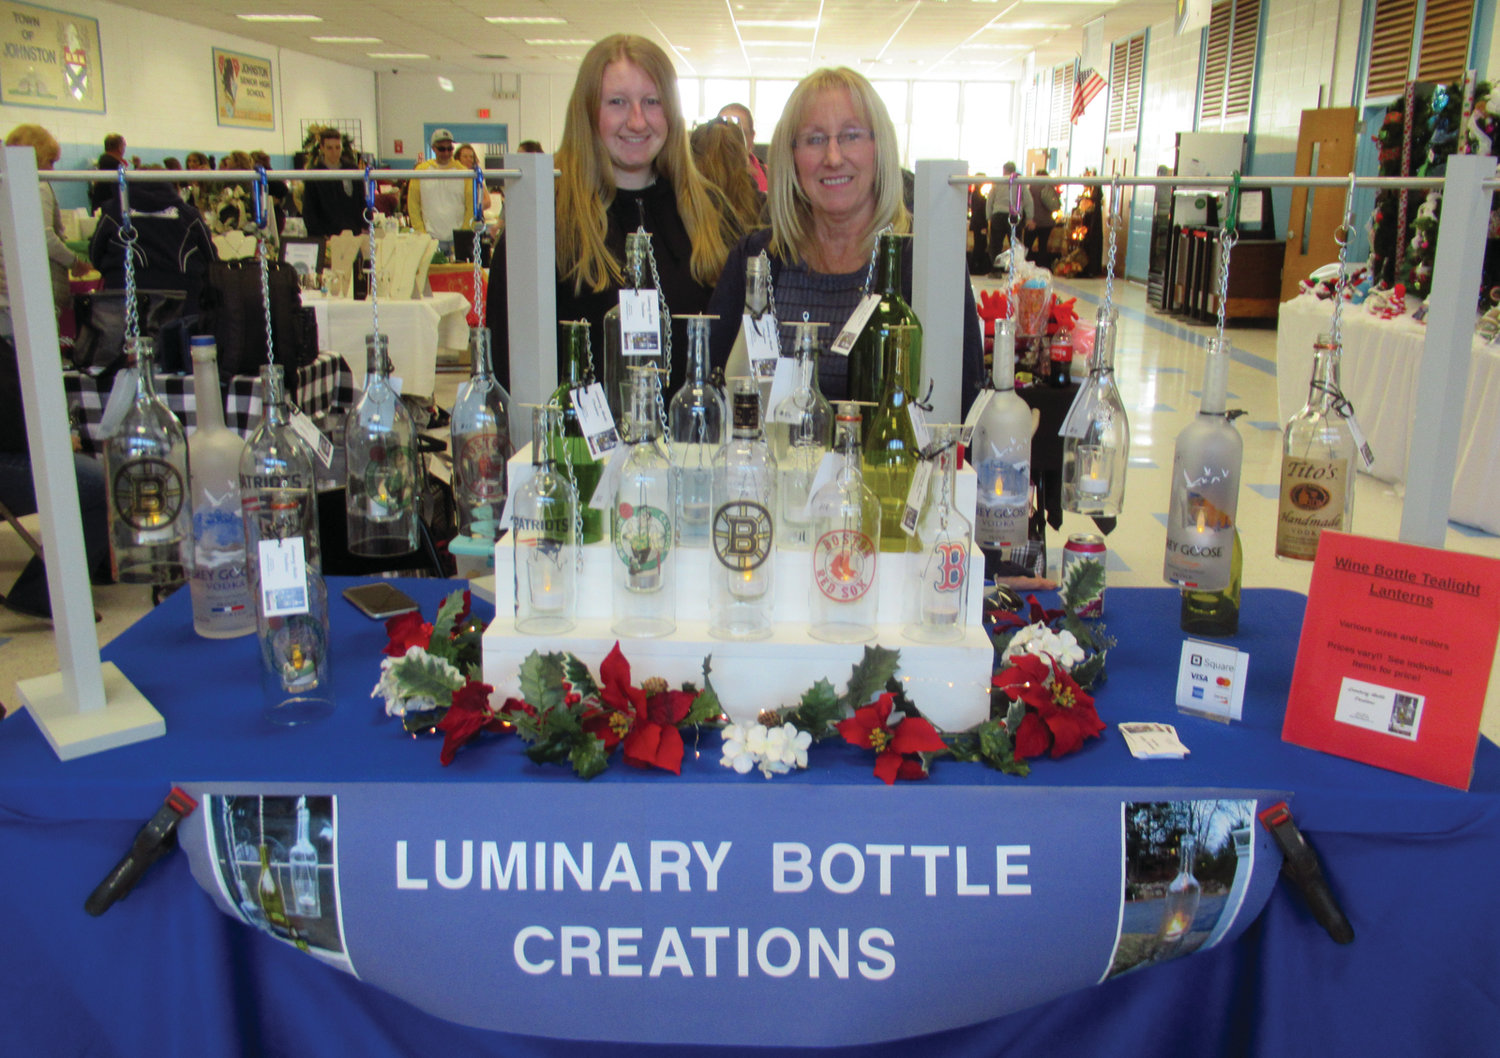 CLASSIC CREATIONS: Debra and Rebecca stand behind the handmade luminary lights they make from scratch using various bottles.